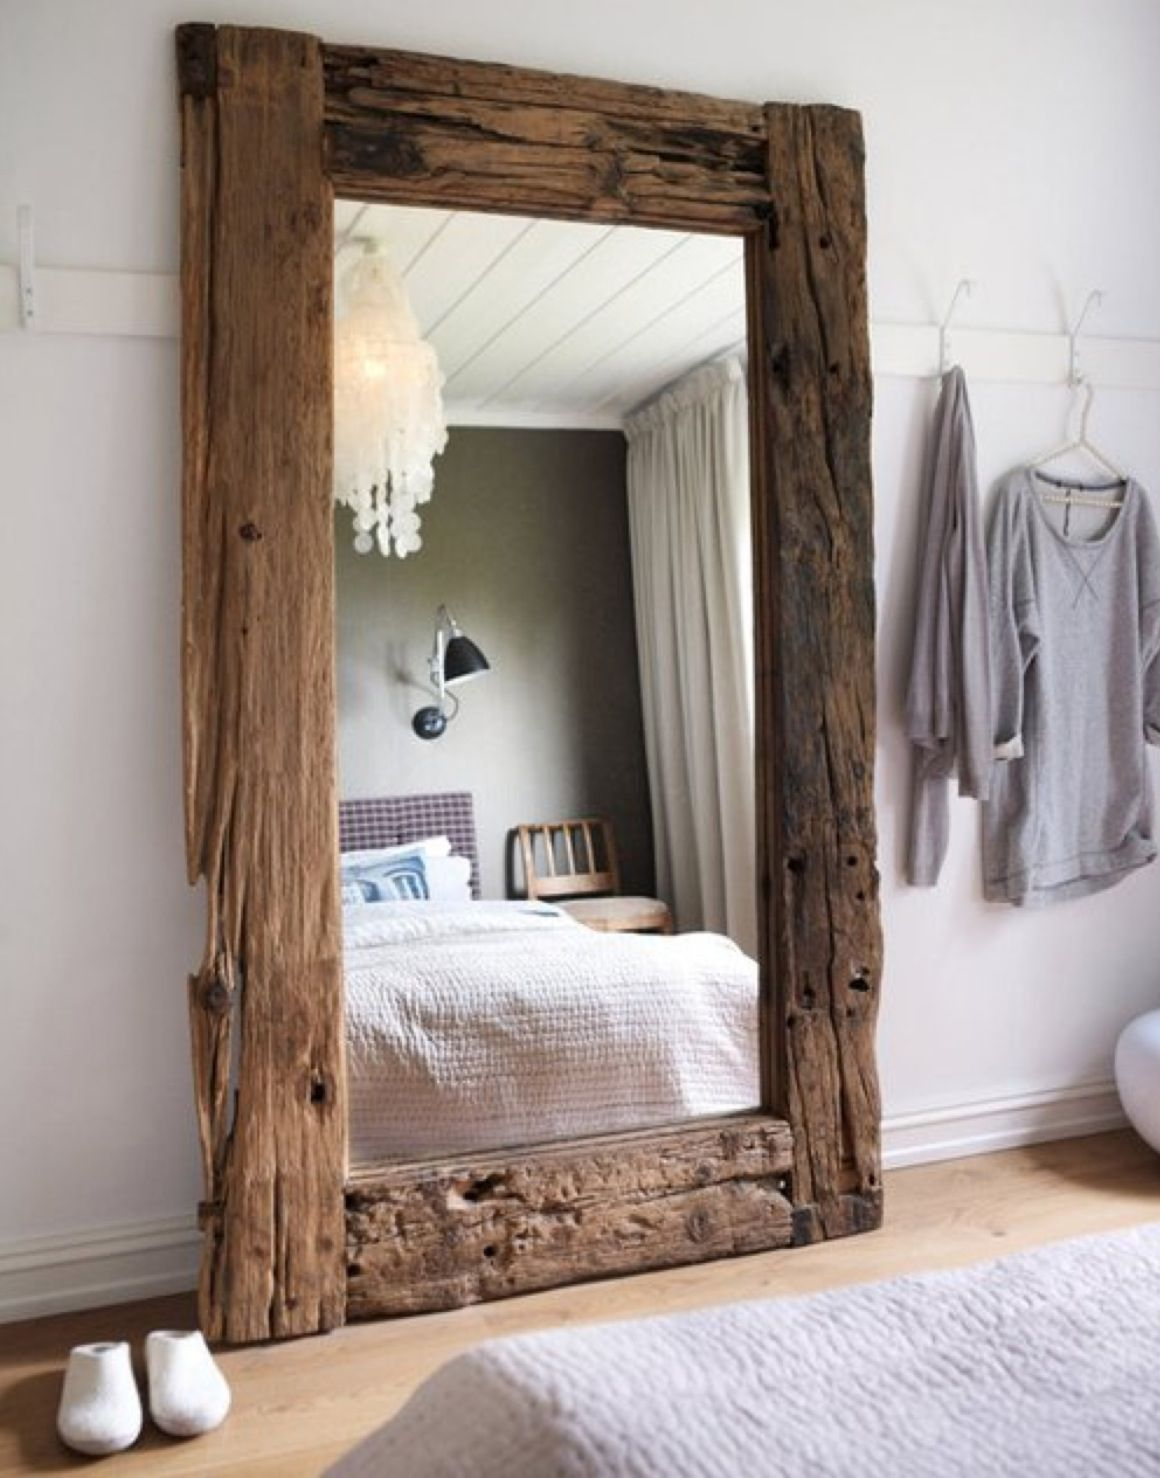 upcycling design: mirrors framed with reclaimed wood | frame